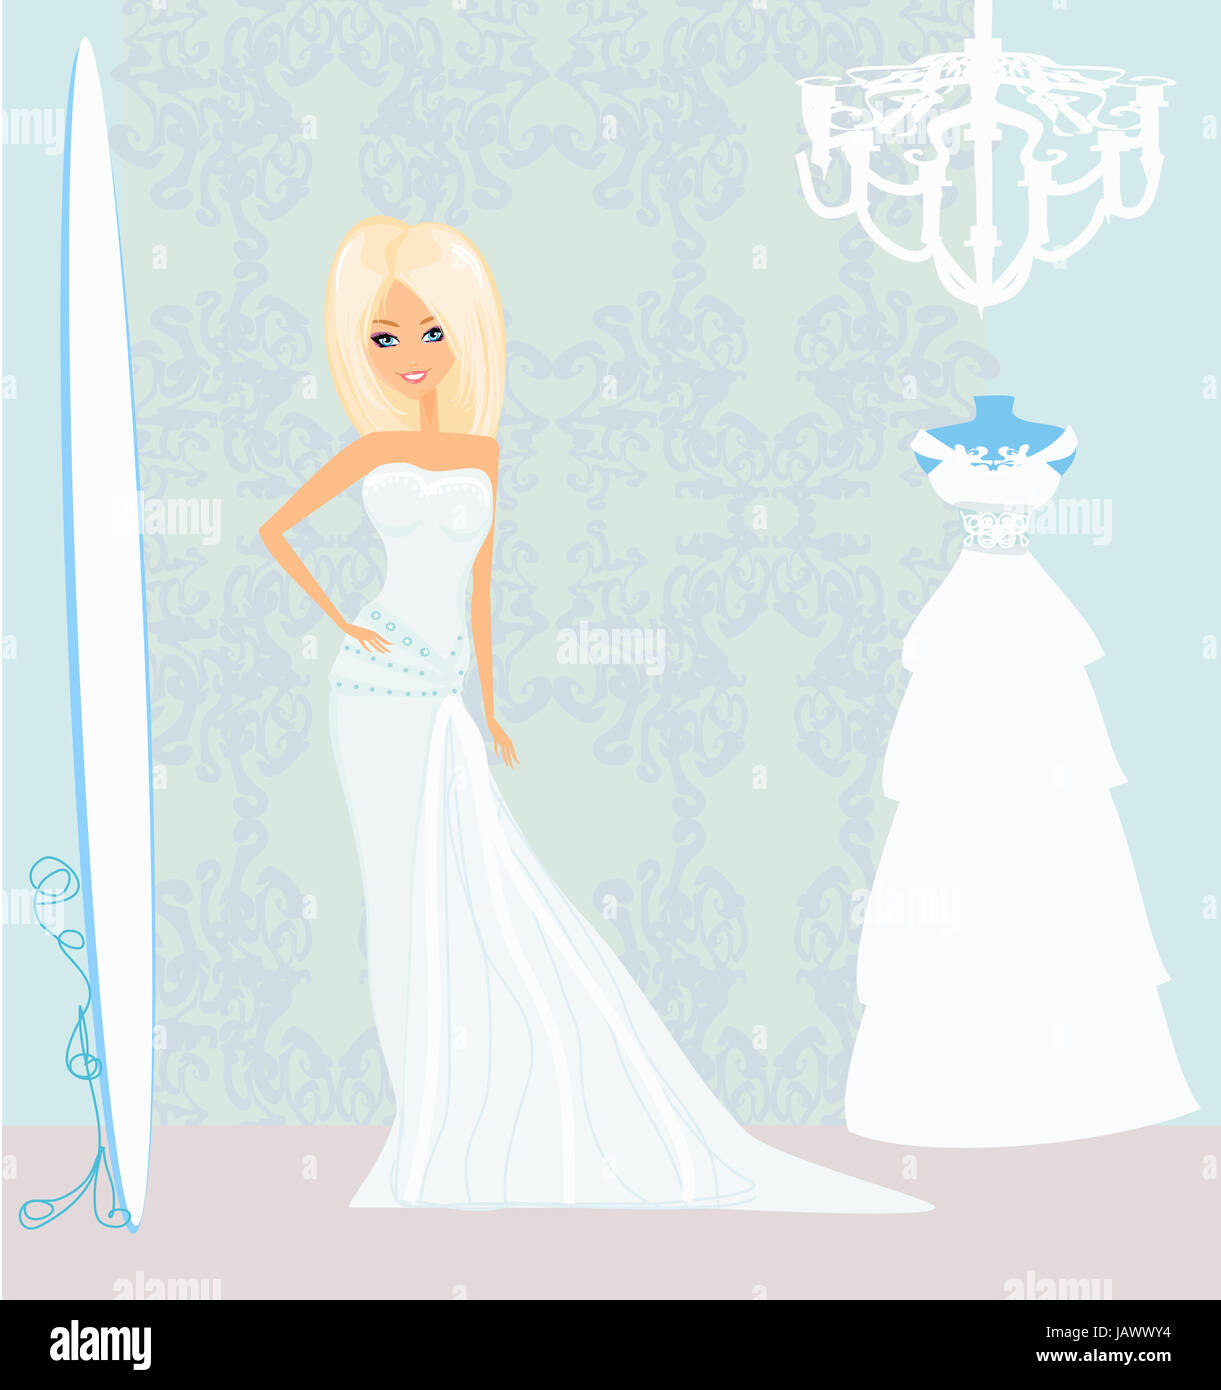 Wedding Dresses Vector High Resolution Stock Photography And Images Alamy